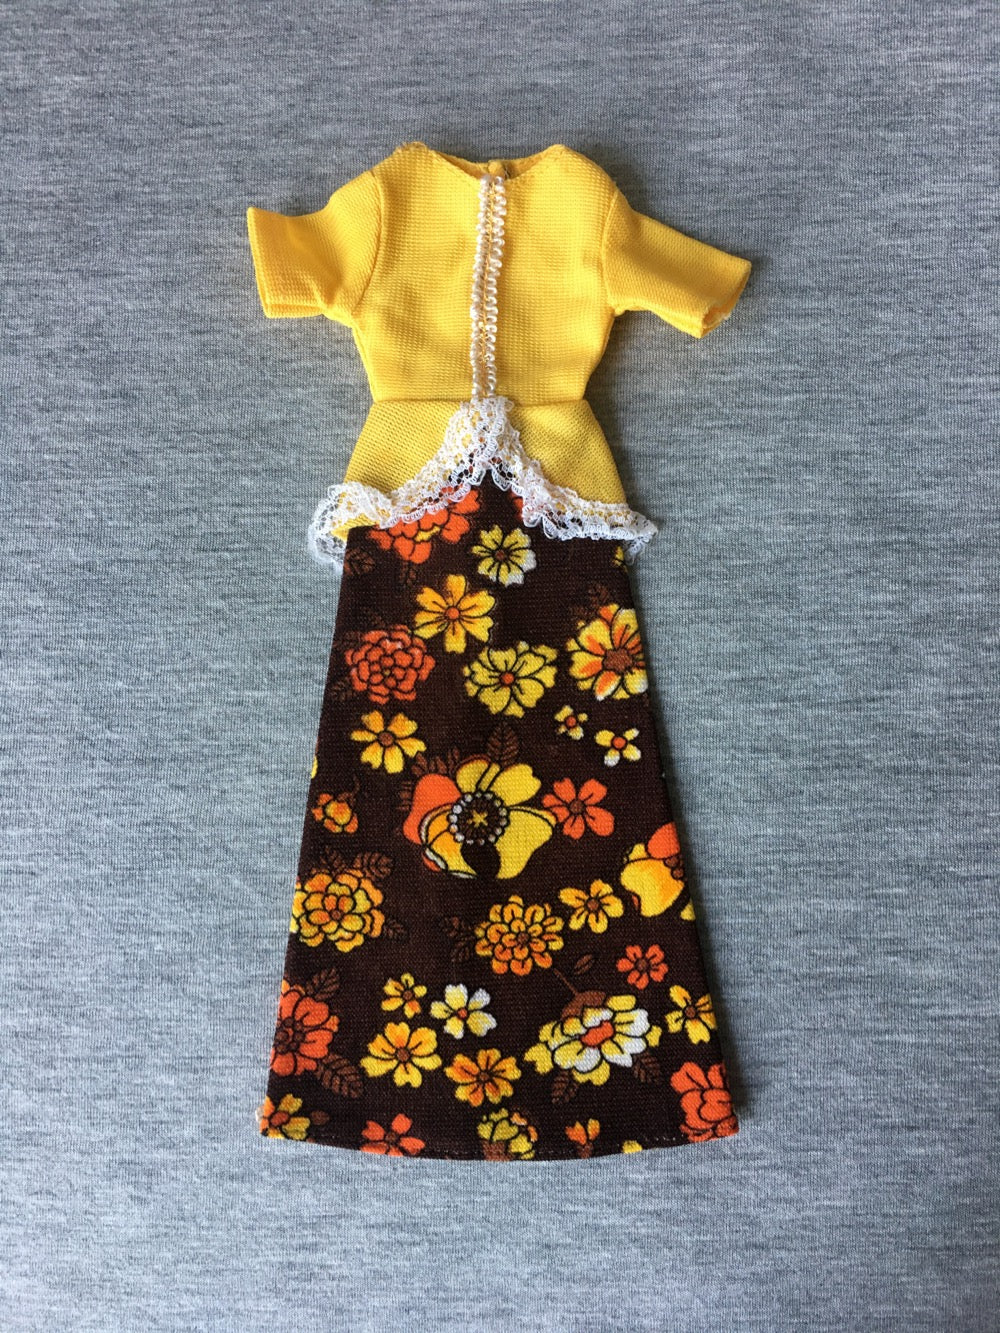 Palitoy Action Girl yellow and brown floral maxi dress fit 12